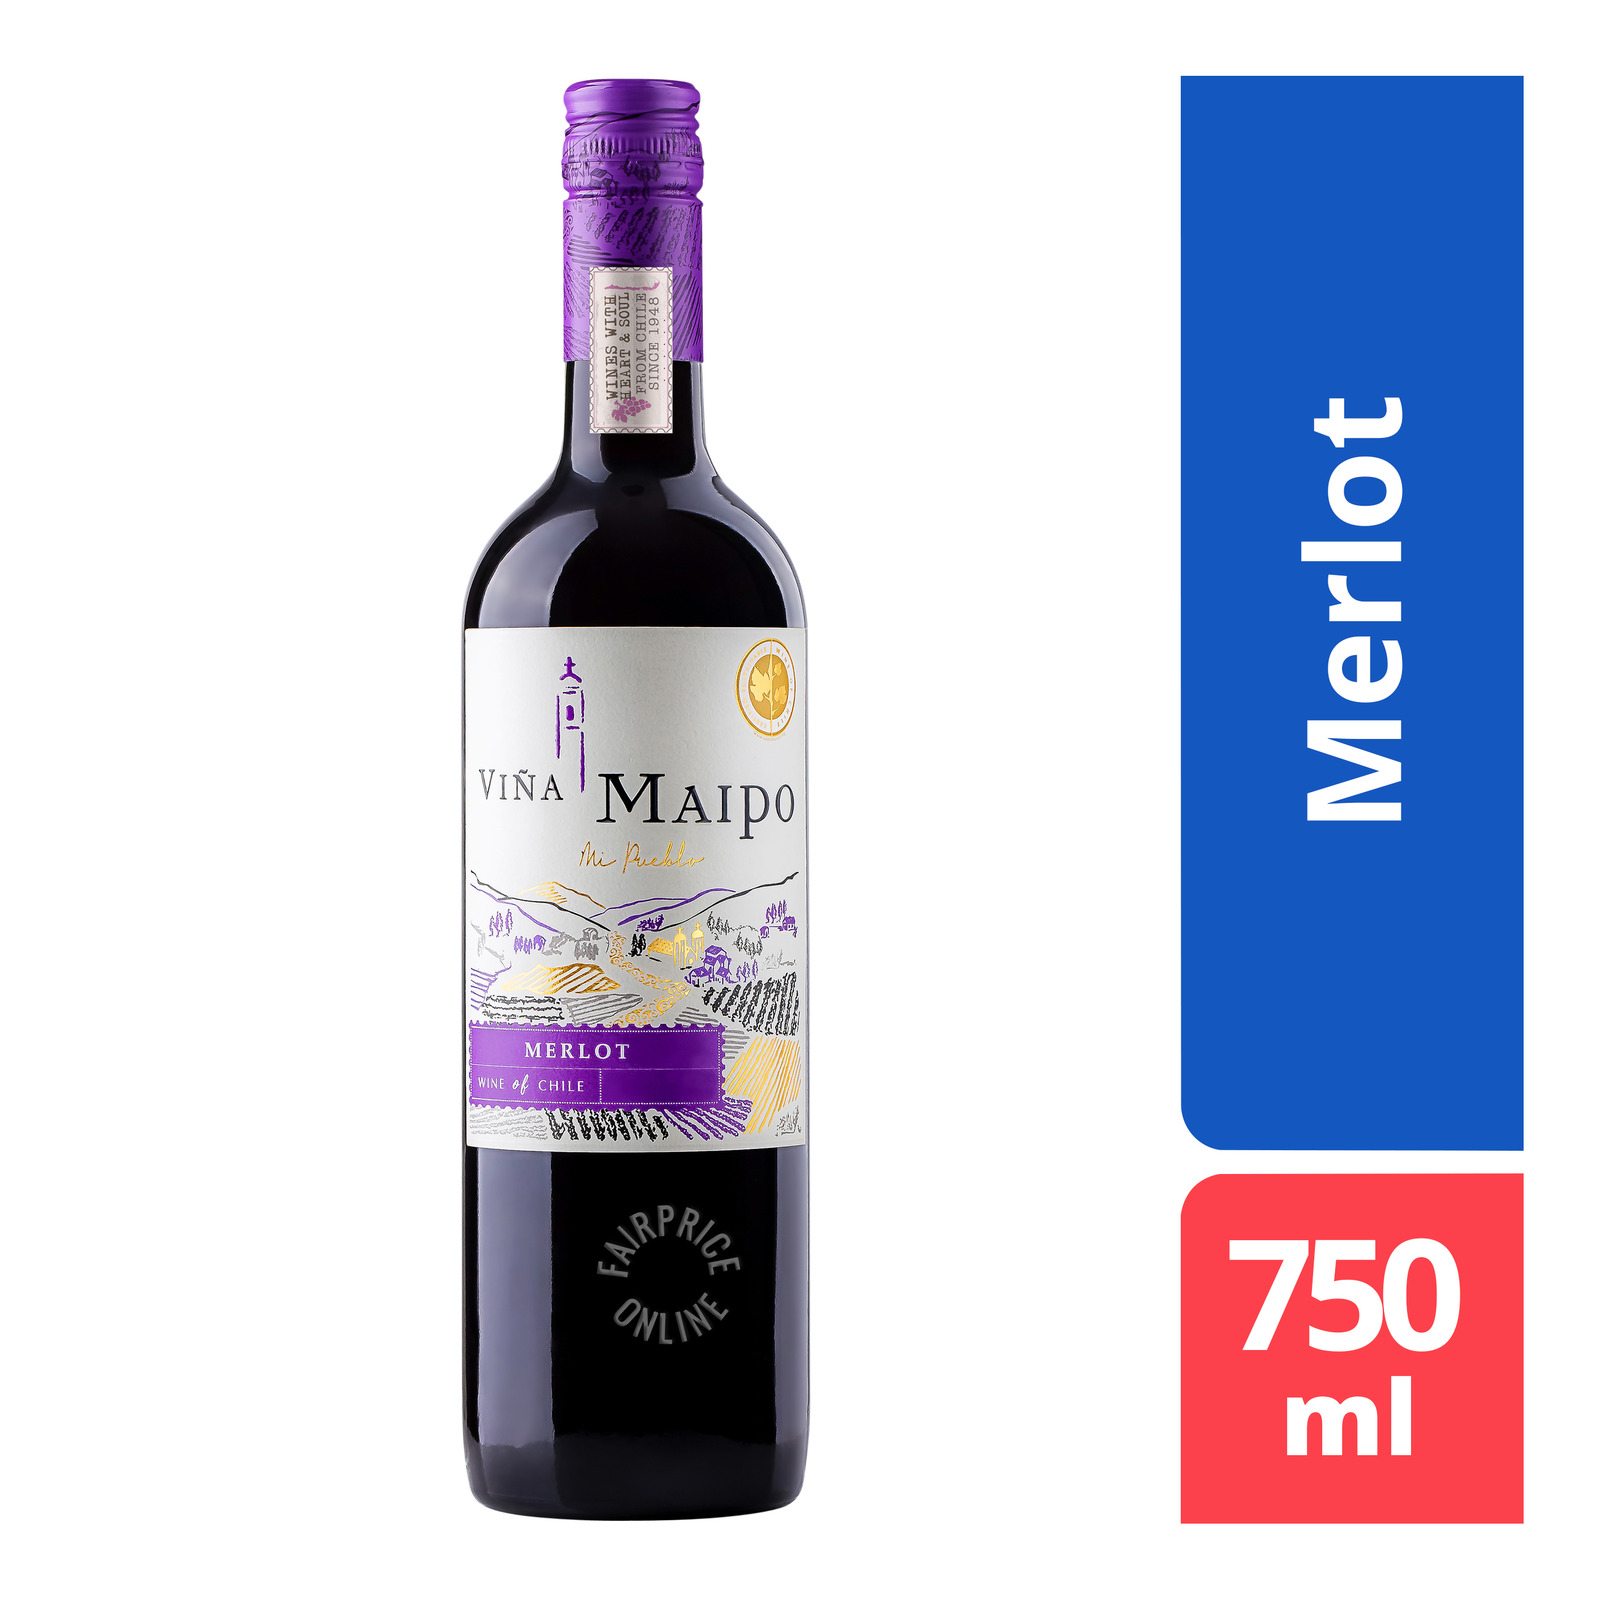 Vina Maipo Red Wine - Merlot